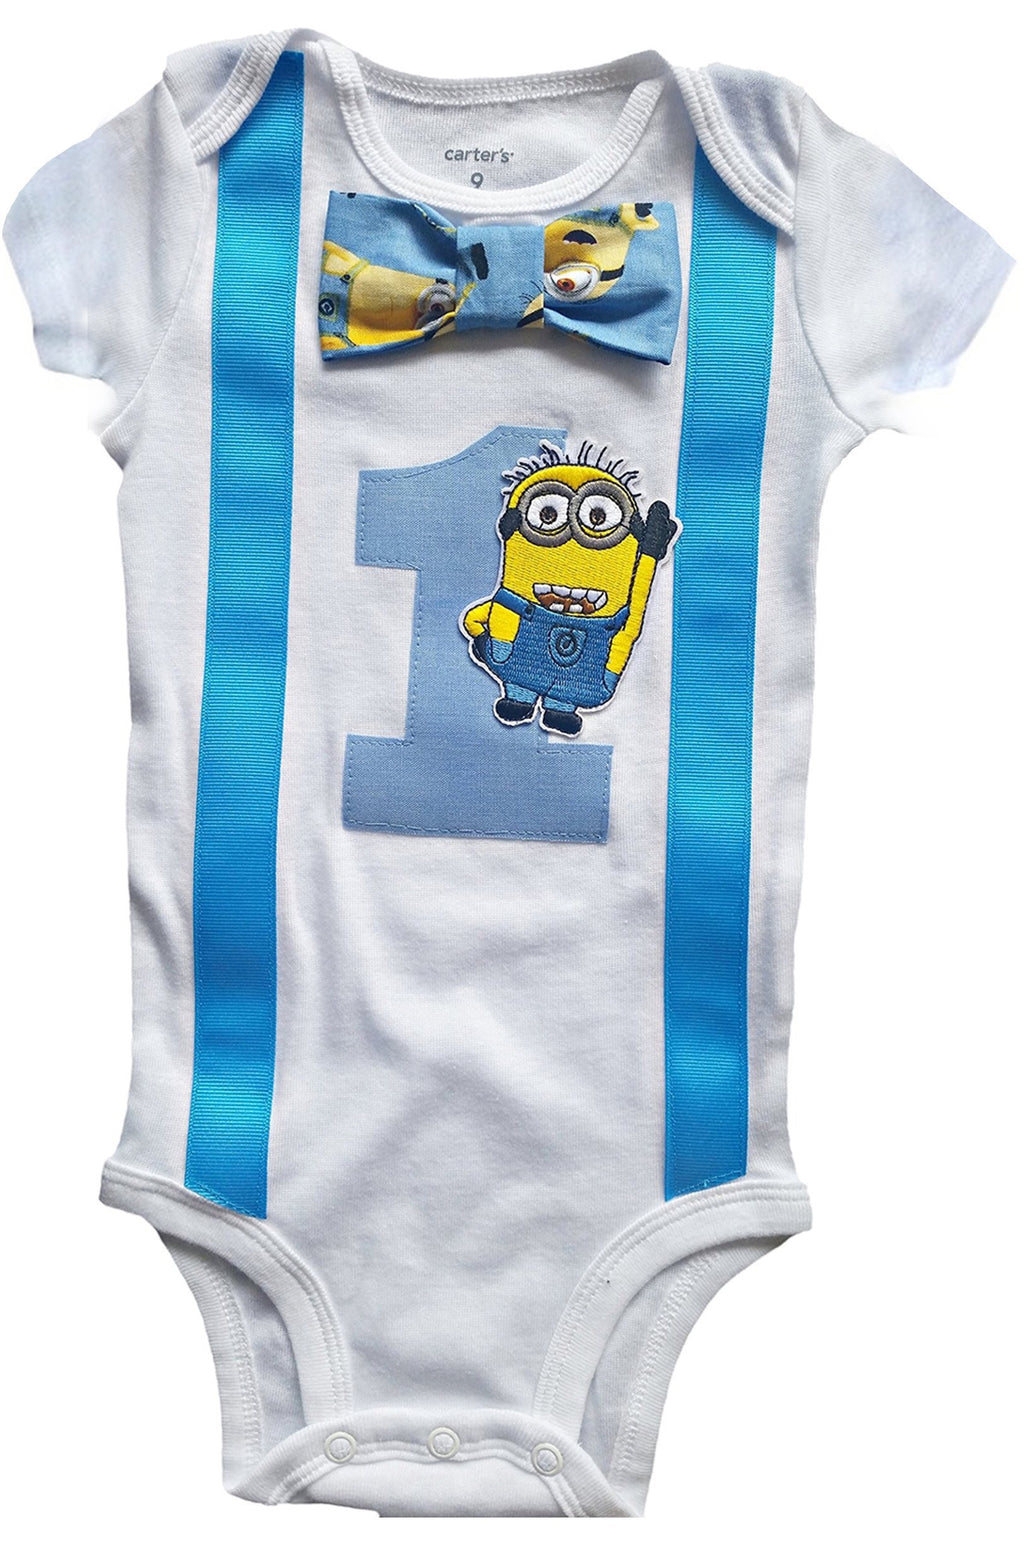 Perfect Pairz Baby Boys 1st Birthday Outfit - Bodysuit